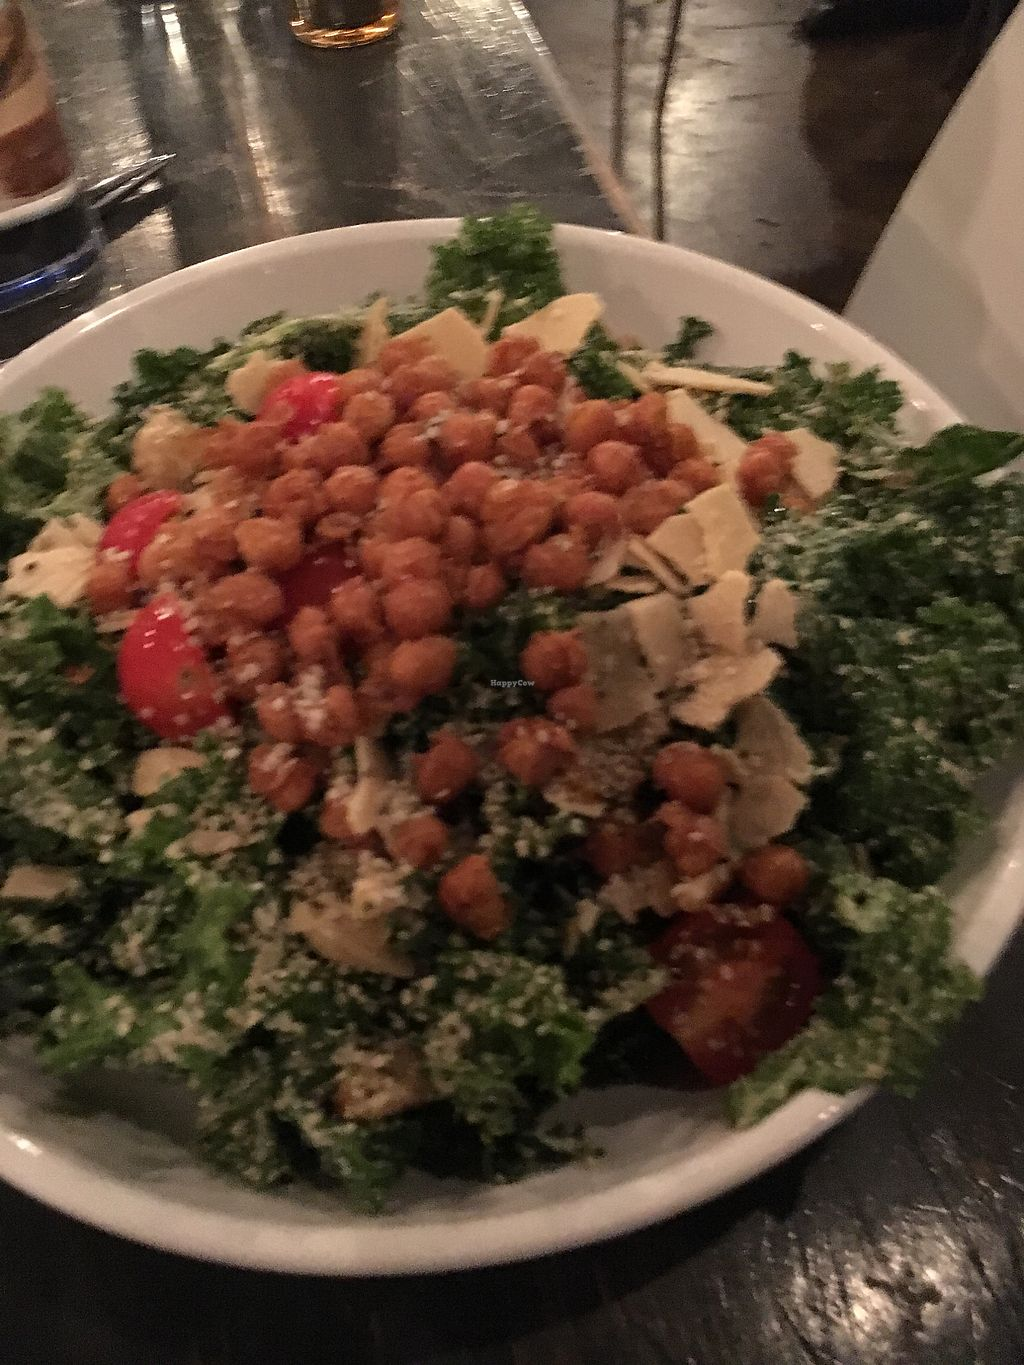 """Photo of Avo  by <a href=""""/members/profile/RolandWilliams"""">RolandWilliams</a> <br/>Kale Caesar Salad ??? <br/> December 6, 2017  - <a href='/contact/abuse/image/49007/332757'>Report</a>"""